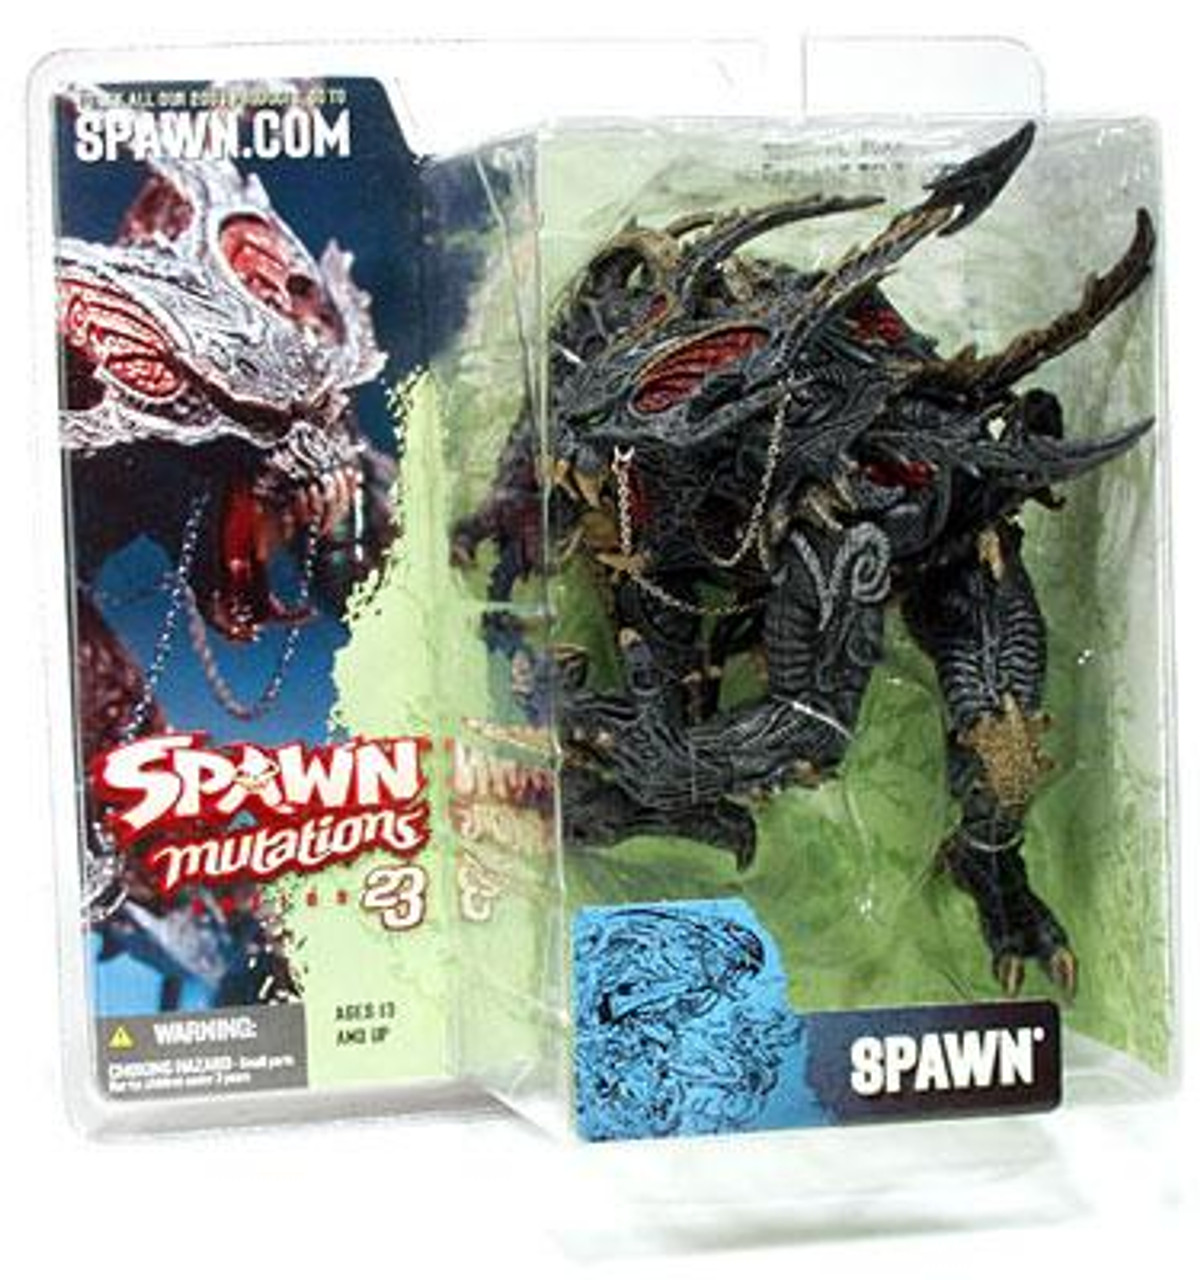 McFarlane Toys Series 23 Mutations Spawn Action Figure